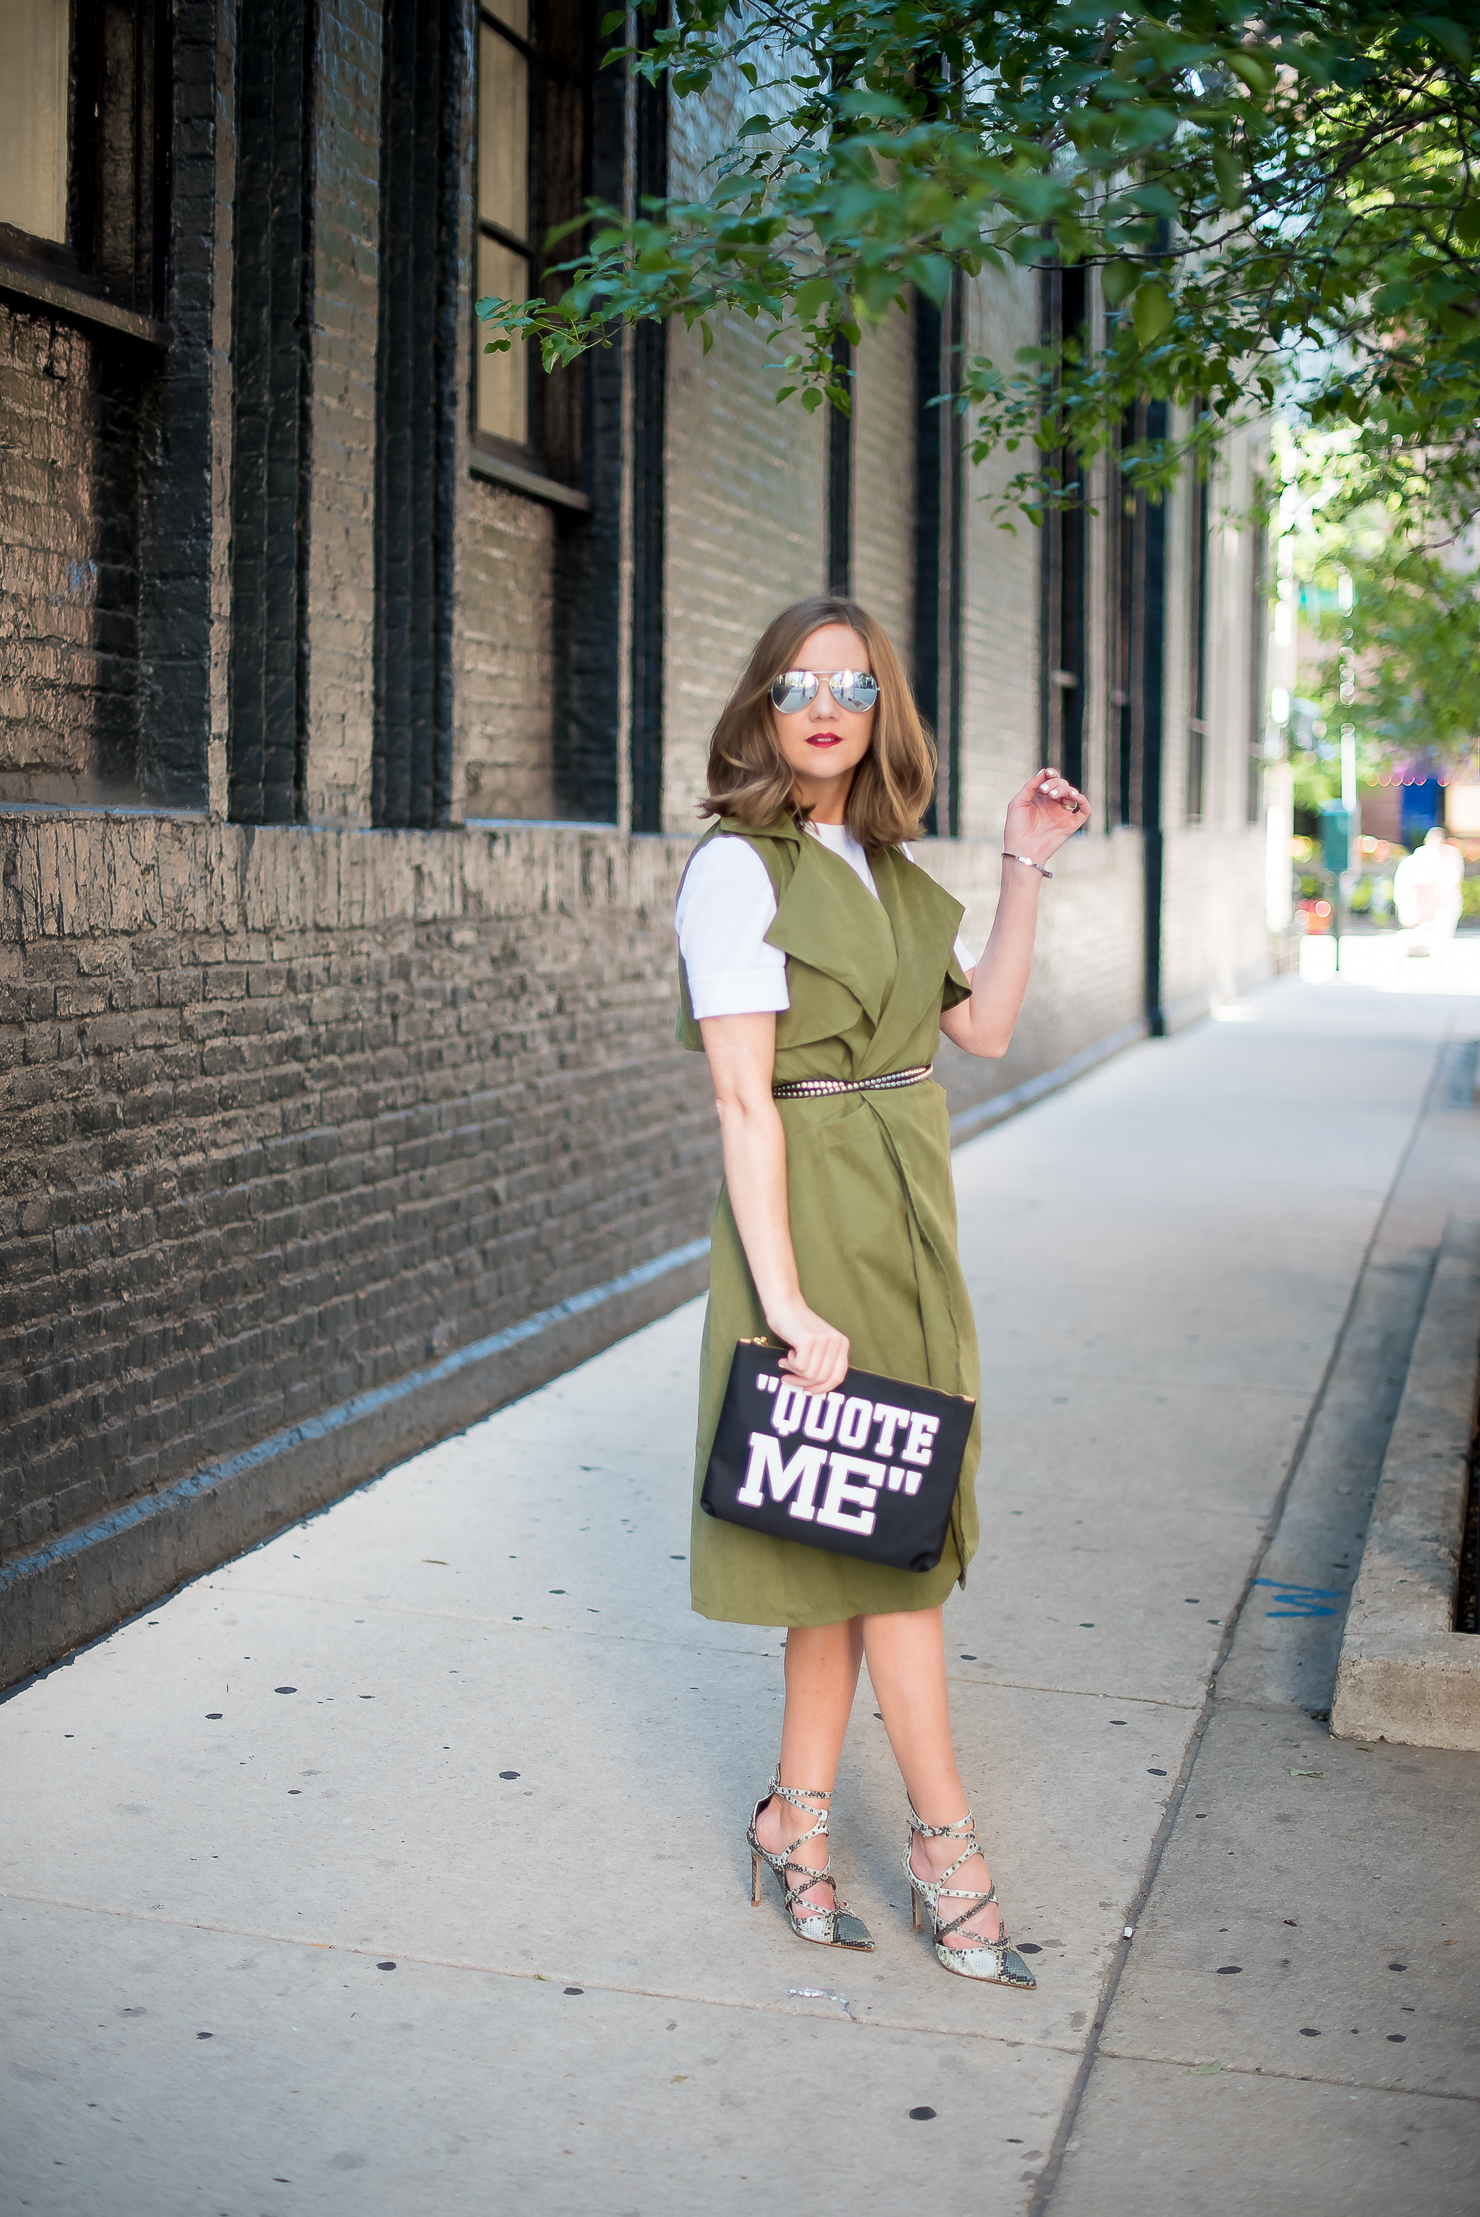 army-green-draped-trench-vest-zara-snakeskin-heels-banana-republic-quote-me-clutch-how-to-wear-a-trench-as-a-dress-trench-dress